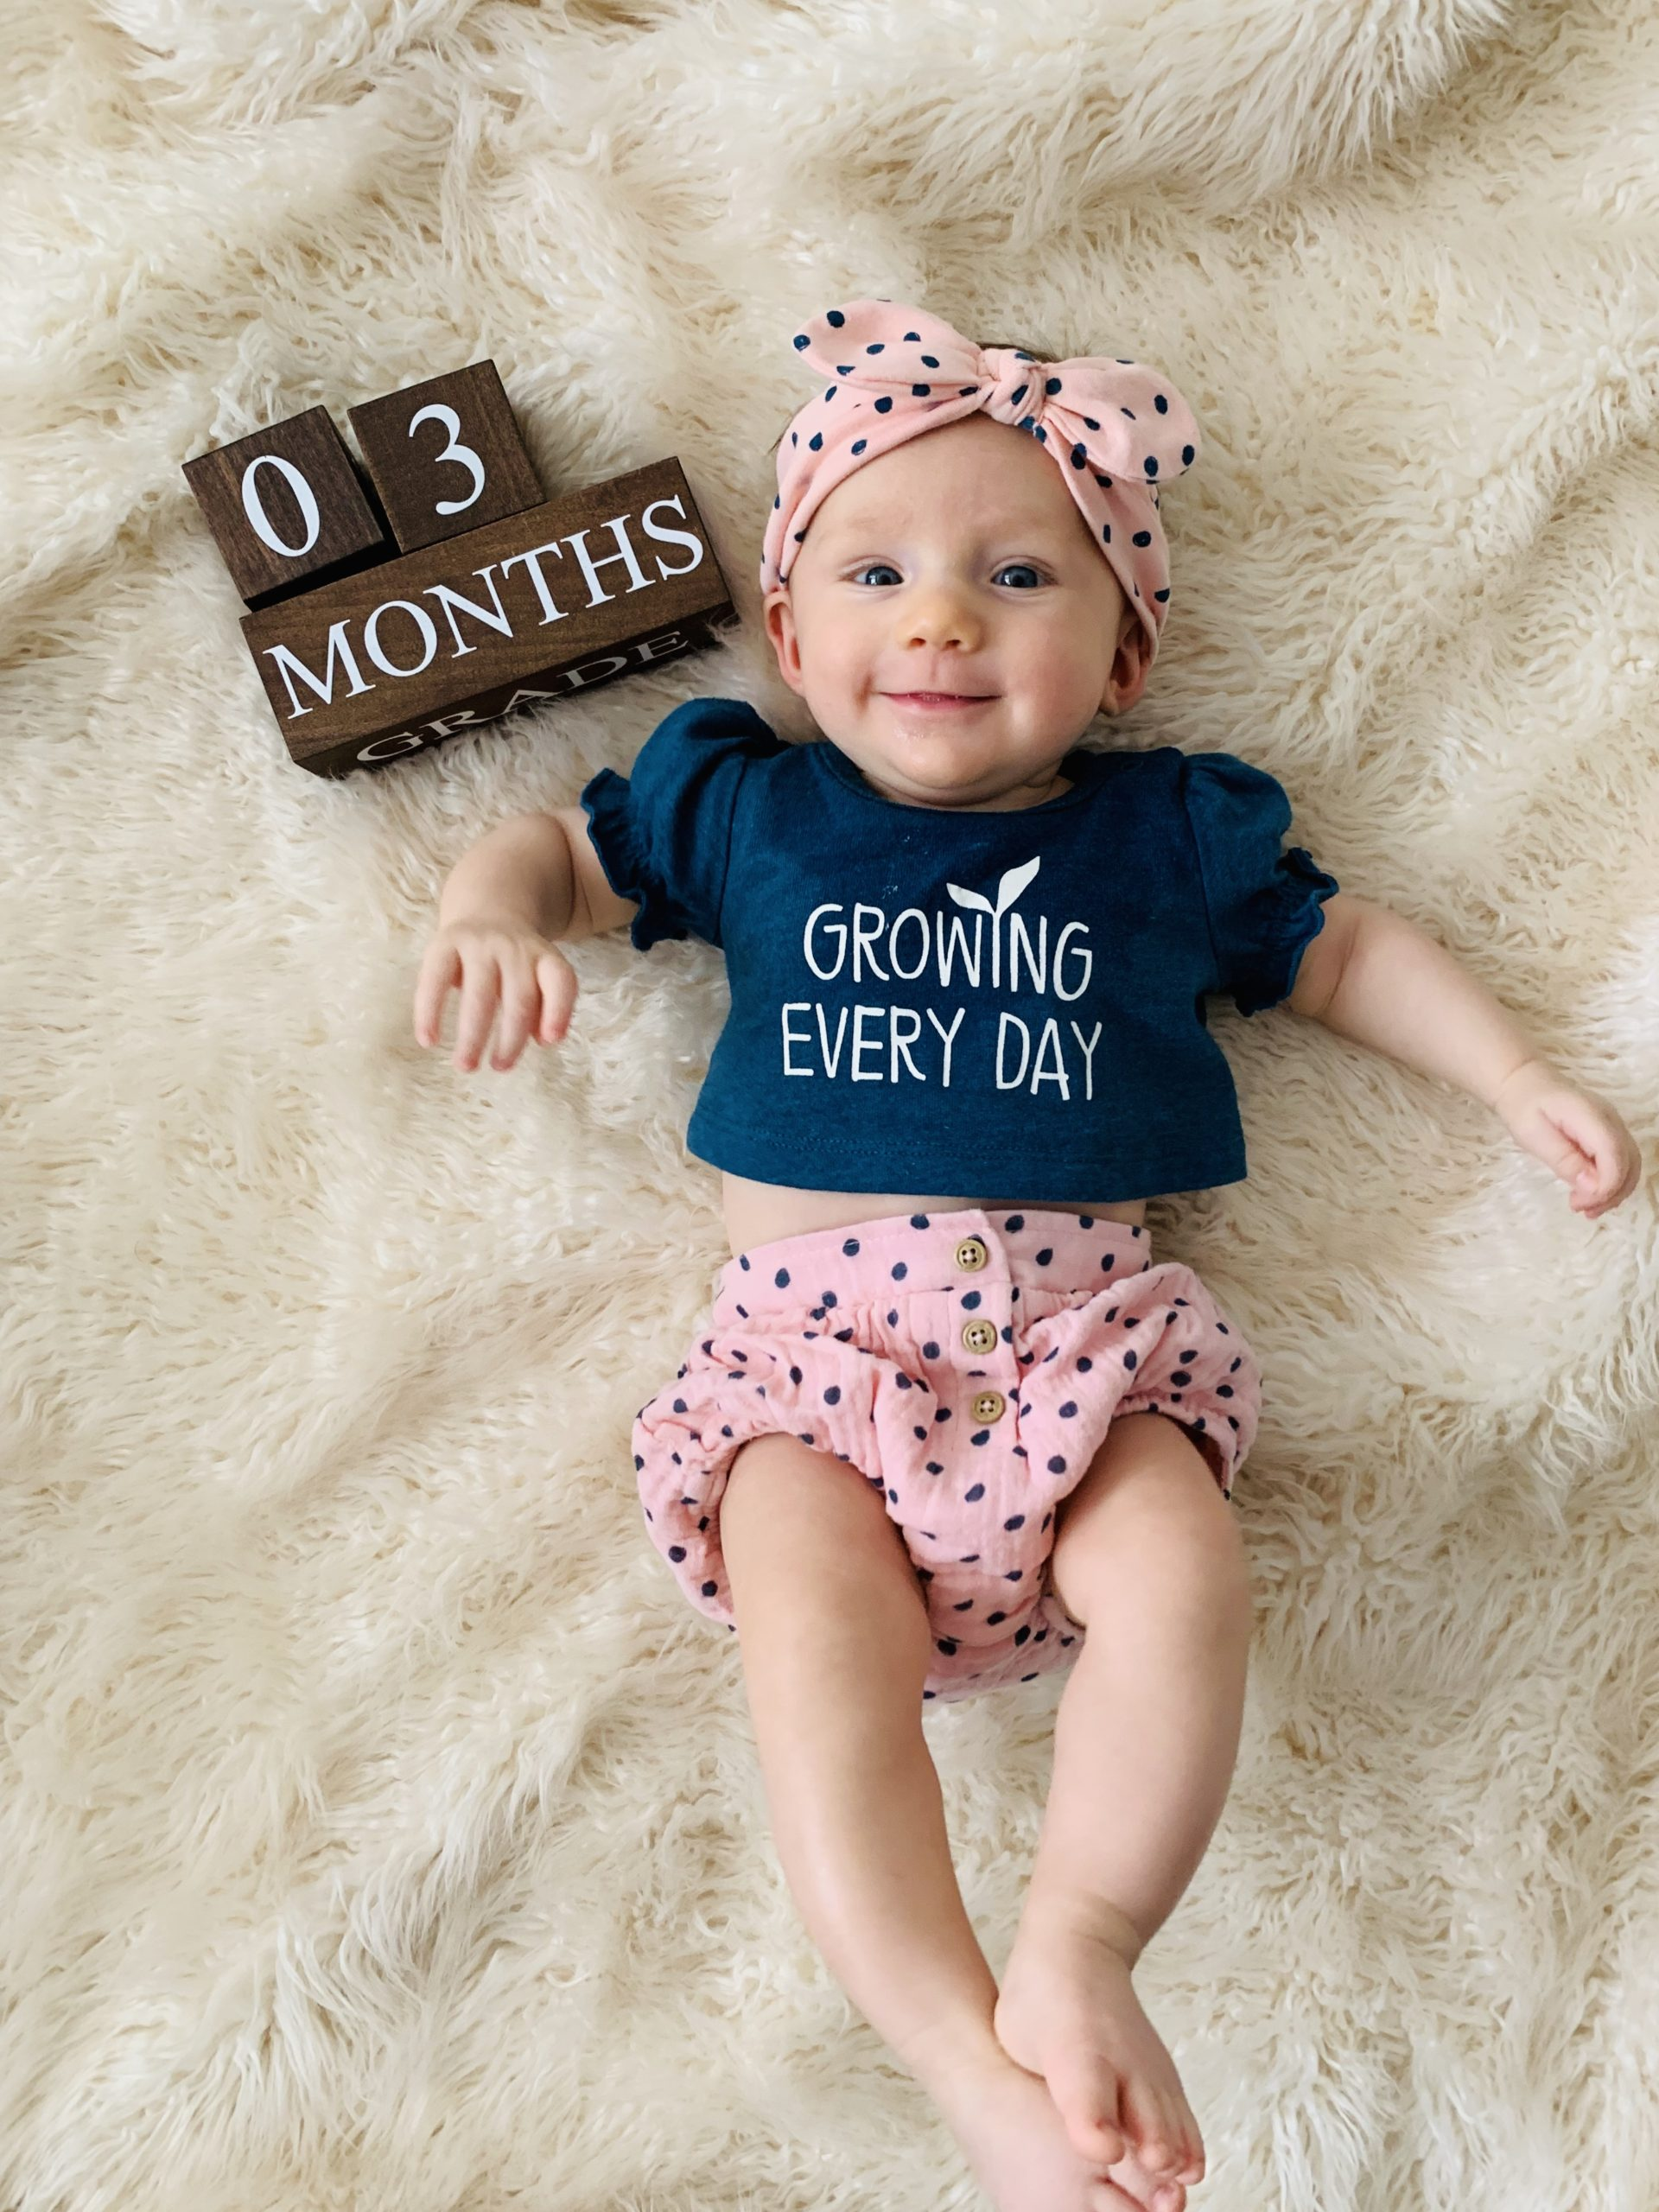 3 month baby update